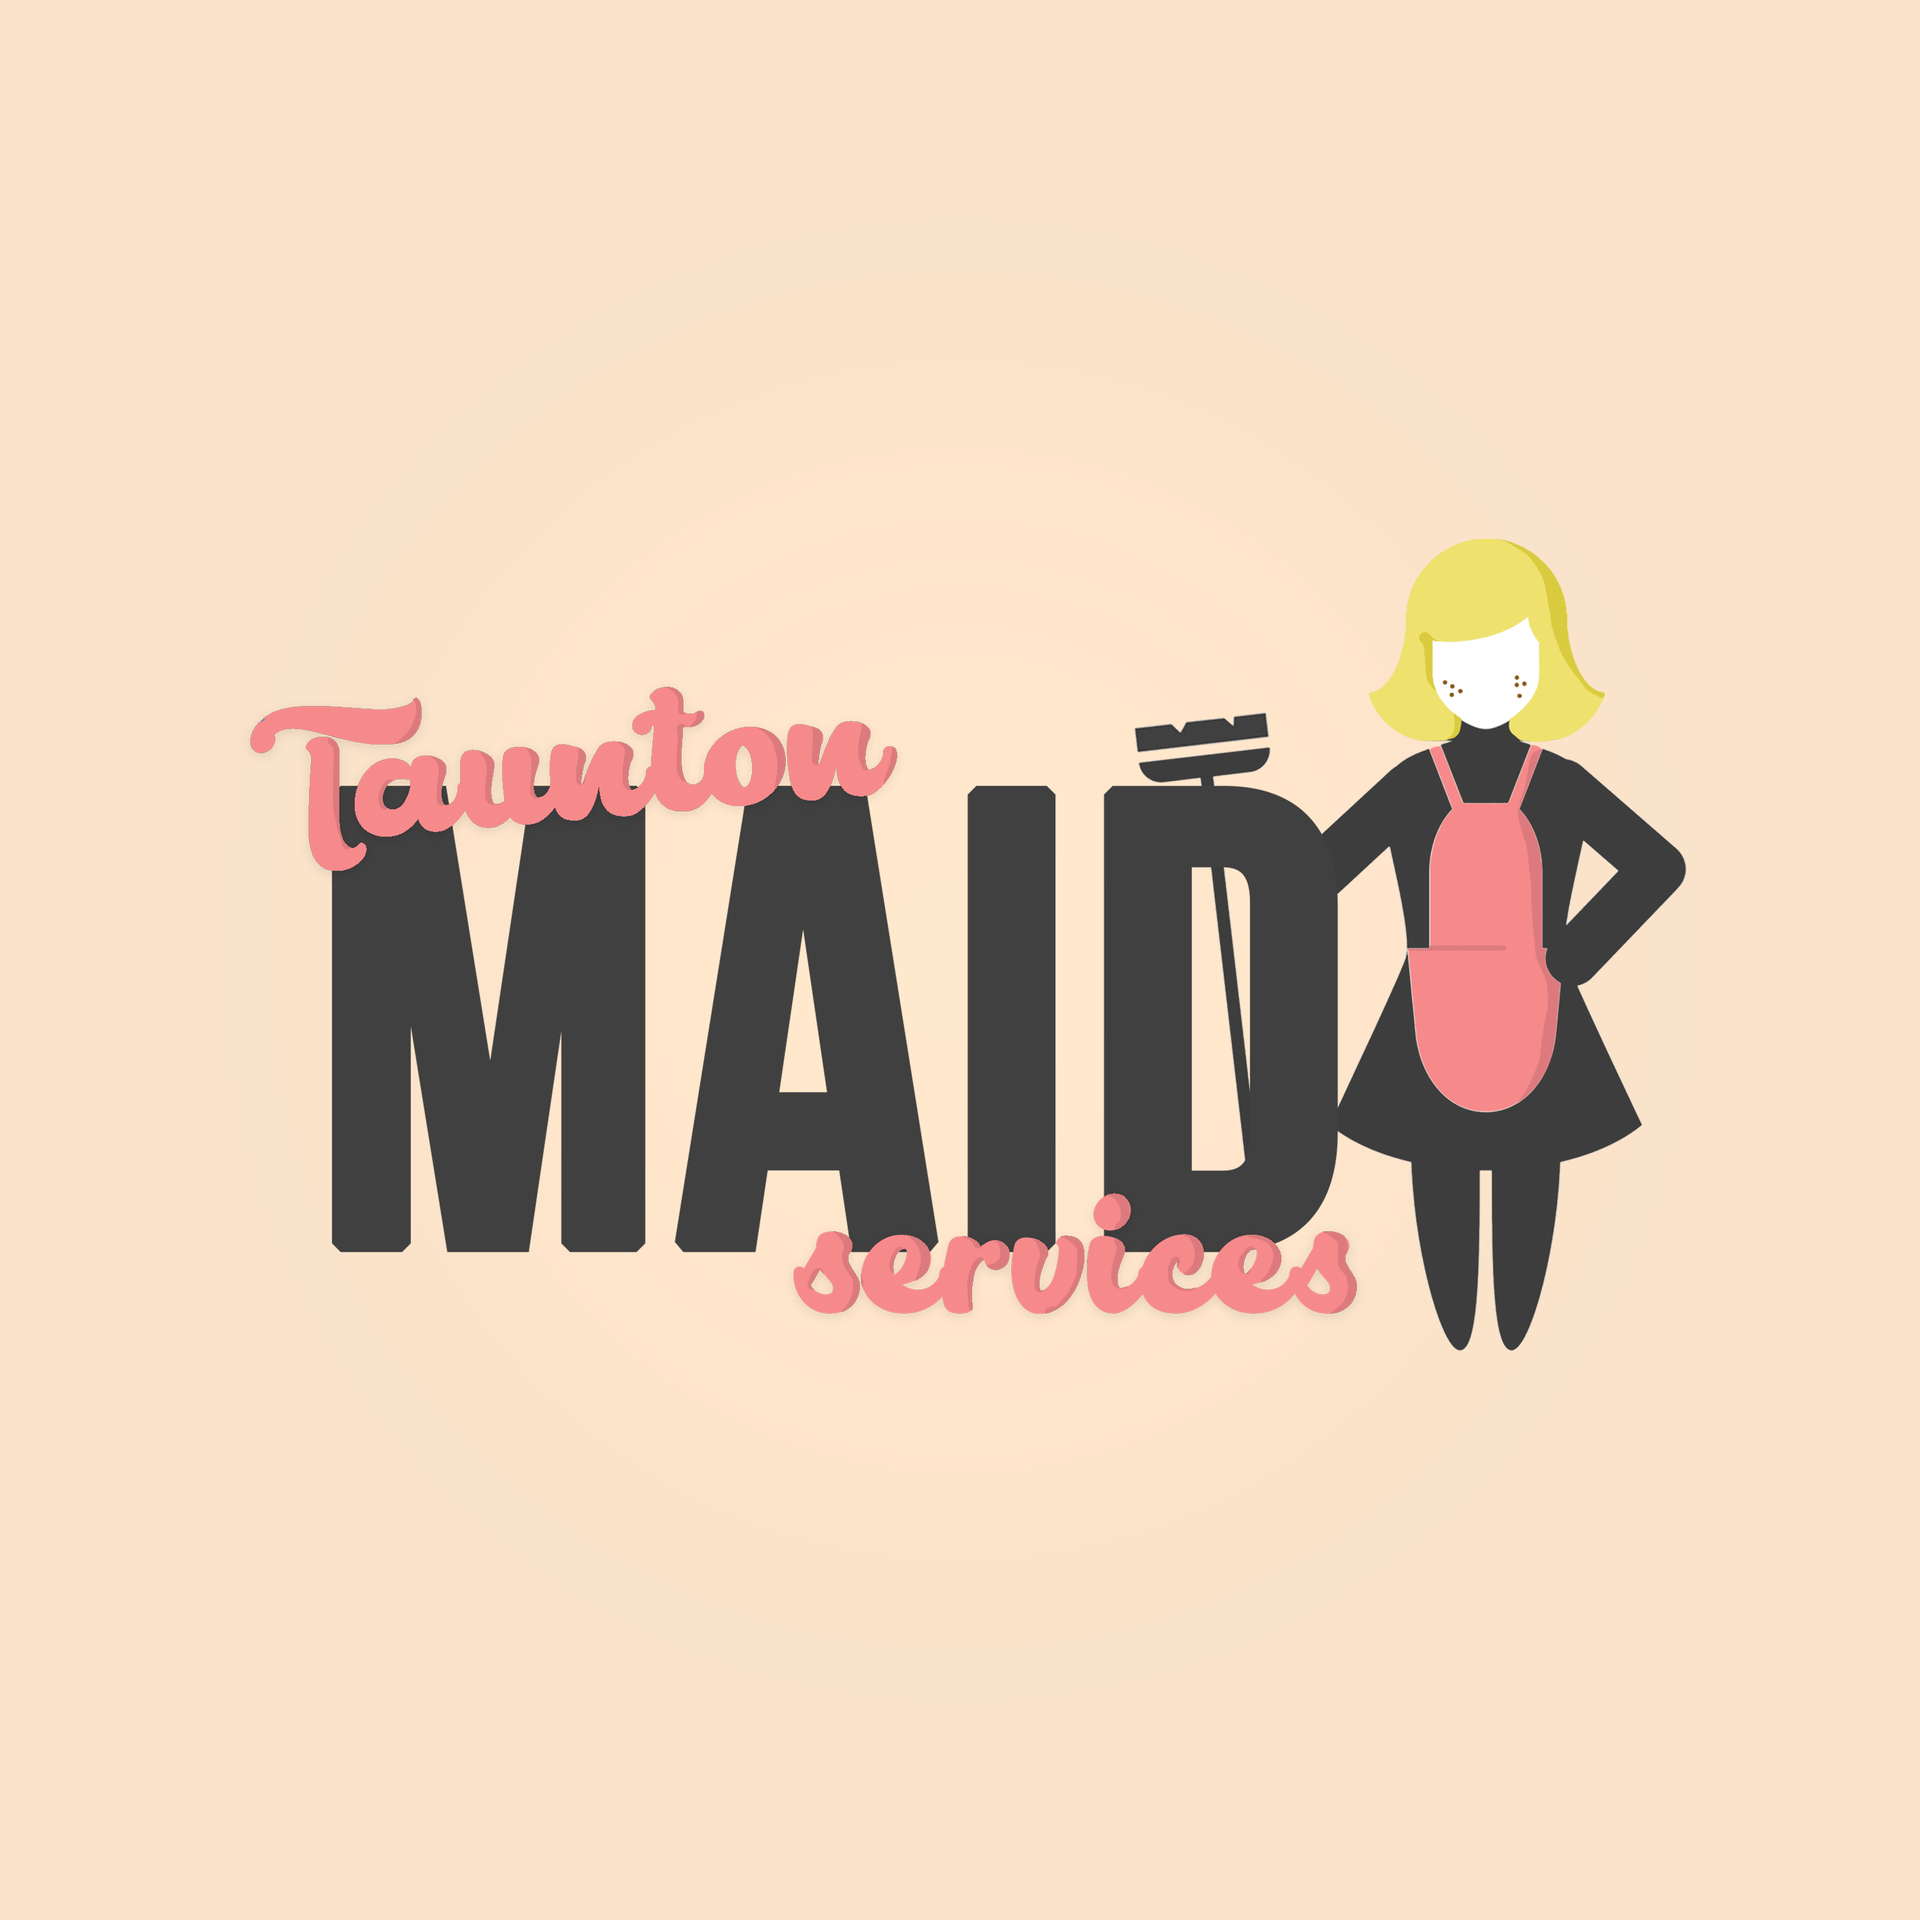 Tauton-Maid-Service-Logo-Display.png